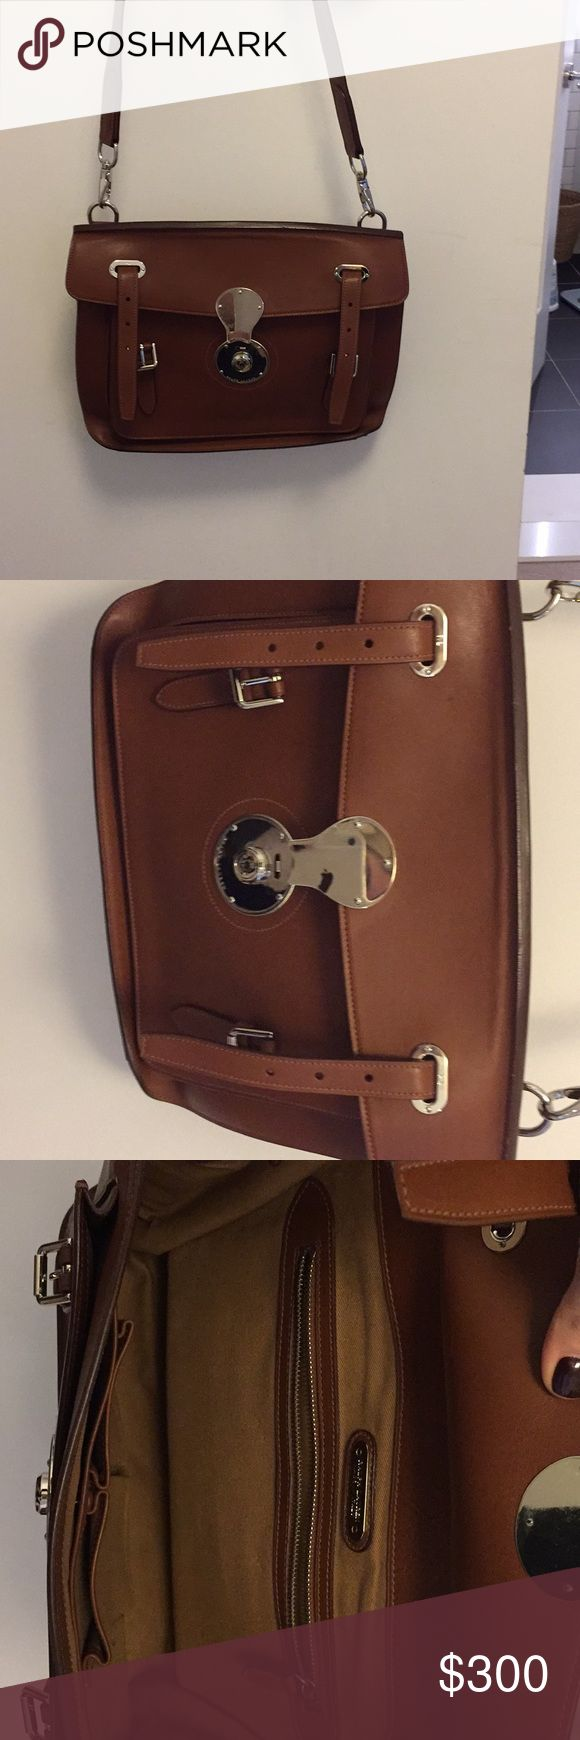 Ralph Lauren leather cross body satchel Like new condition with signature Ricky lock details Ralph Lauren Bags